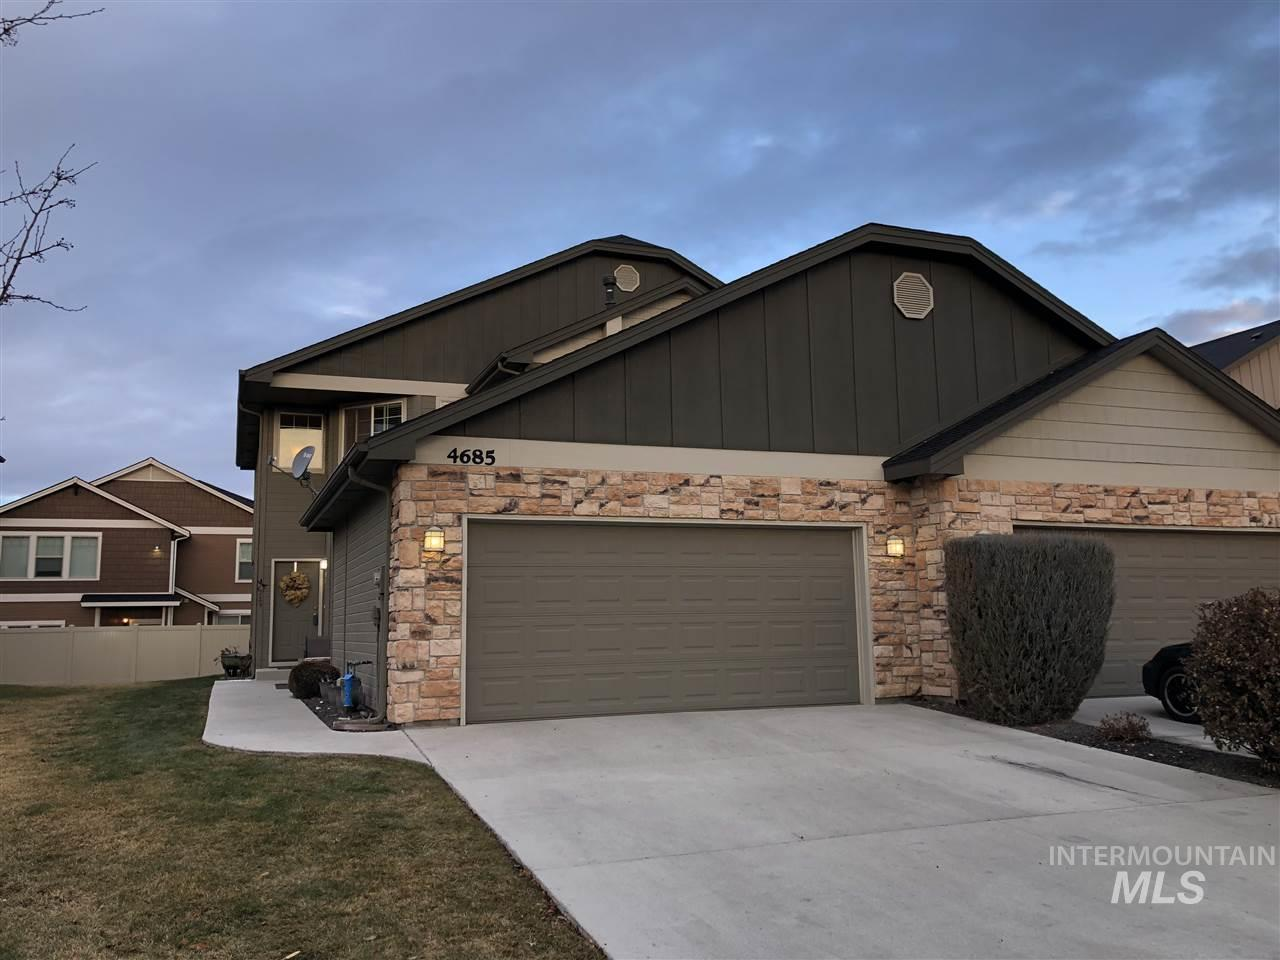 4685 N Zachary Way Meridian Id Listing 98716240 By